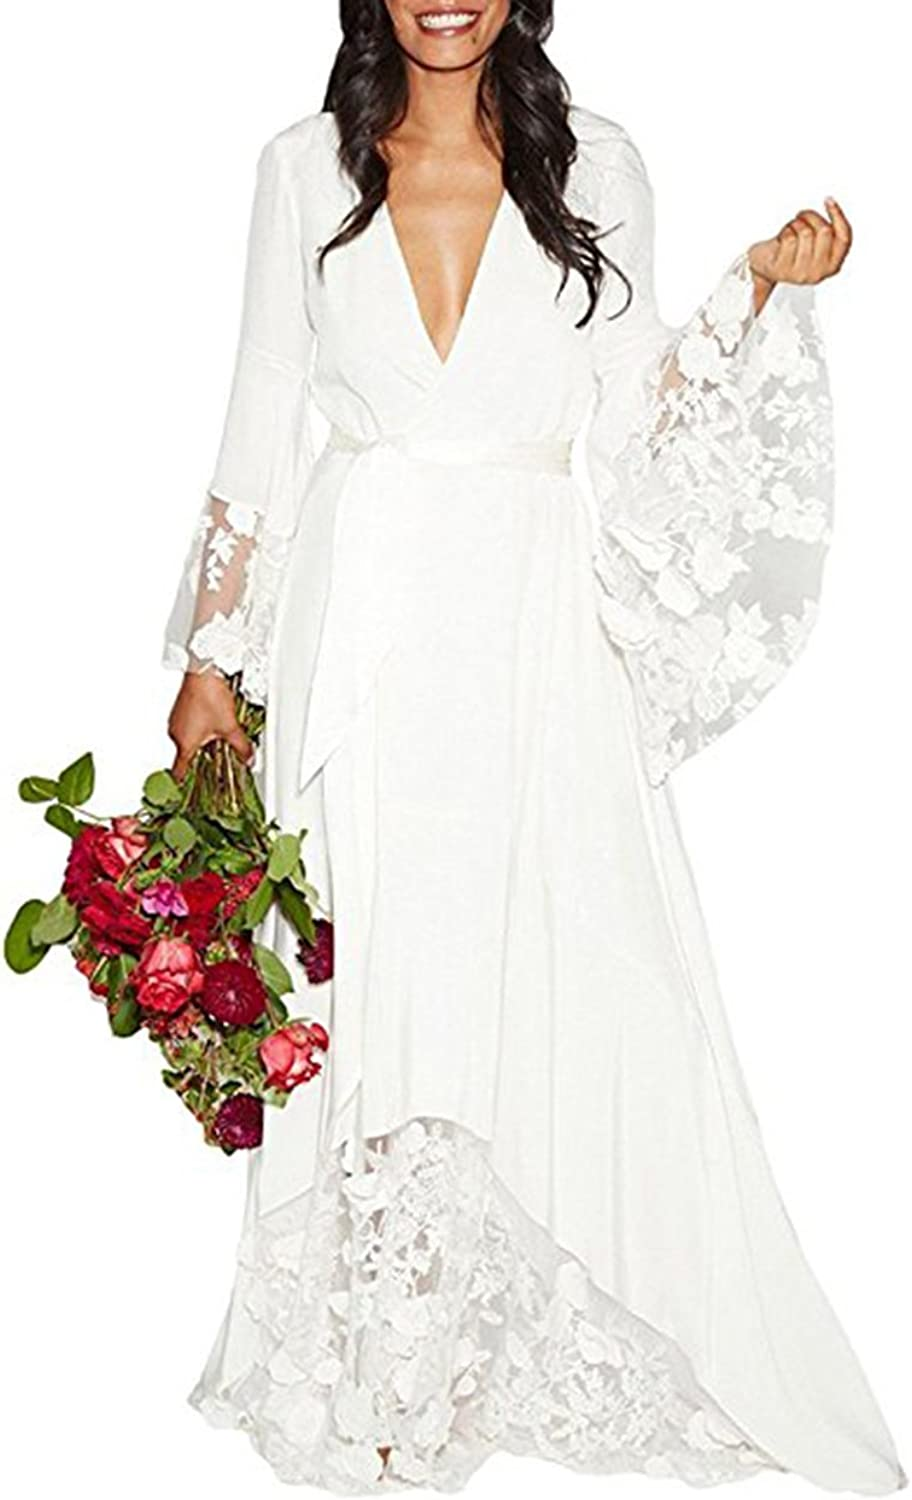 Alilith.Z Sexy Boho Bridal Gowns V Neck Flower Lace Long Sleeve Beach Wedding Dresses for Bride